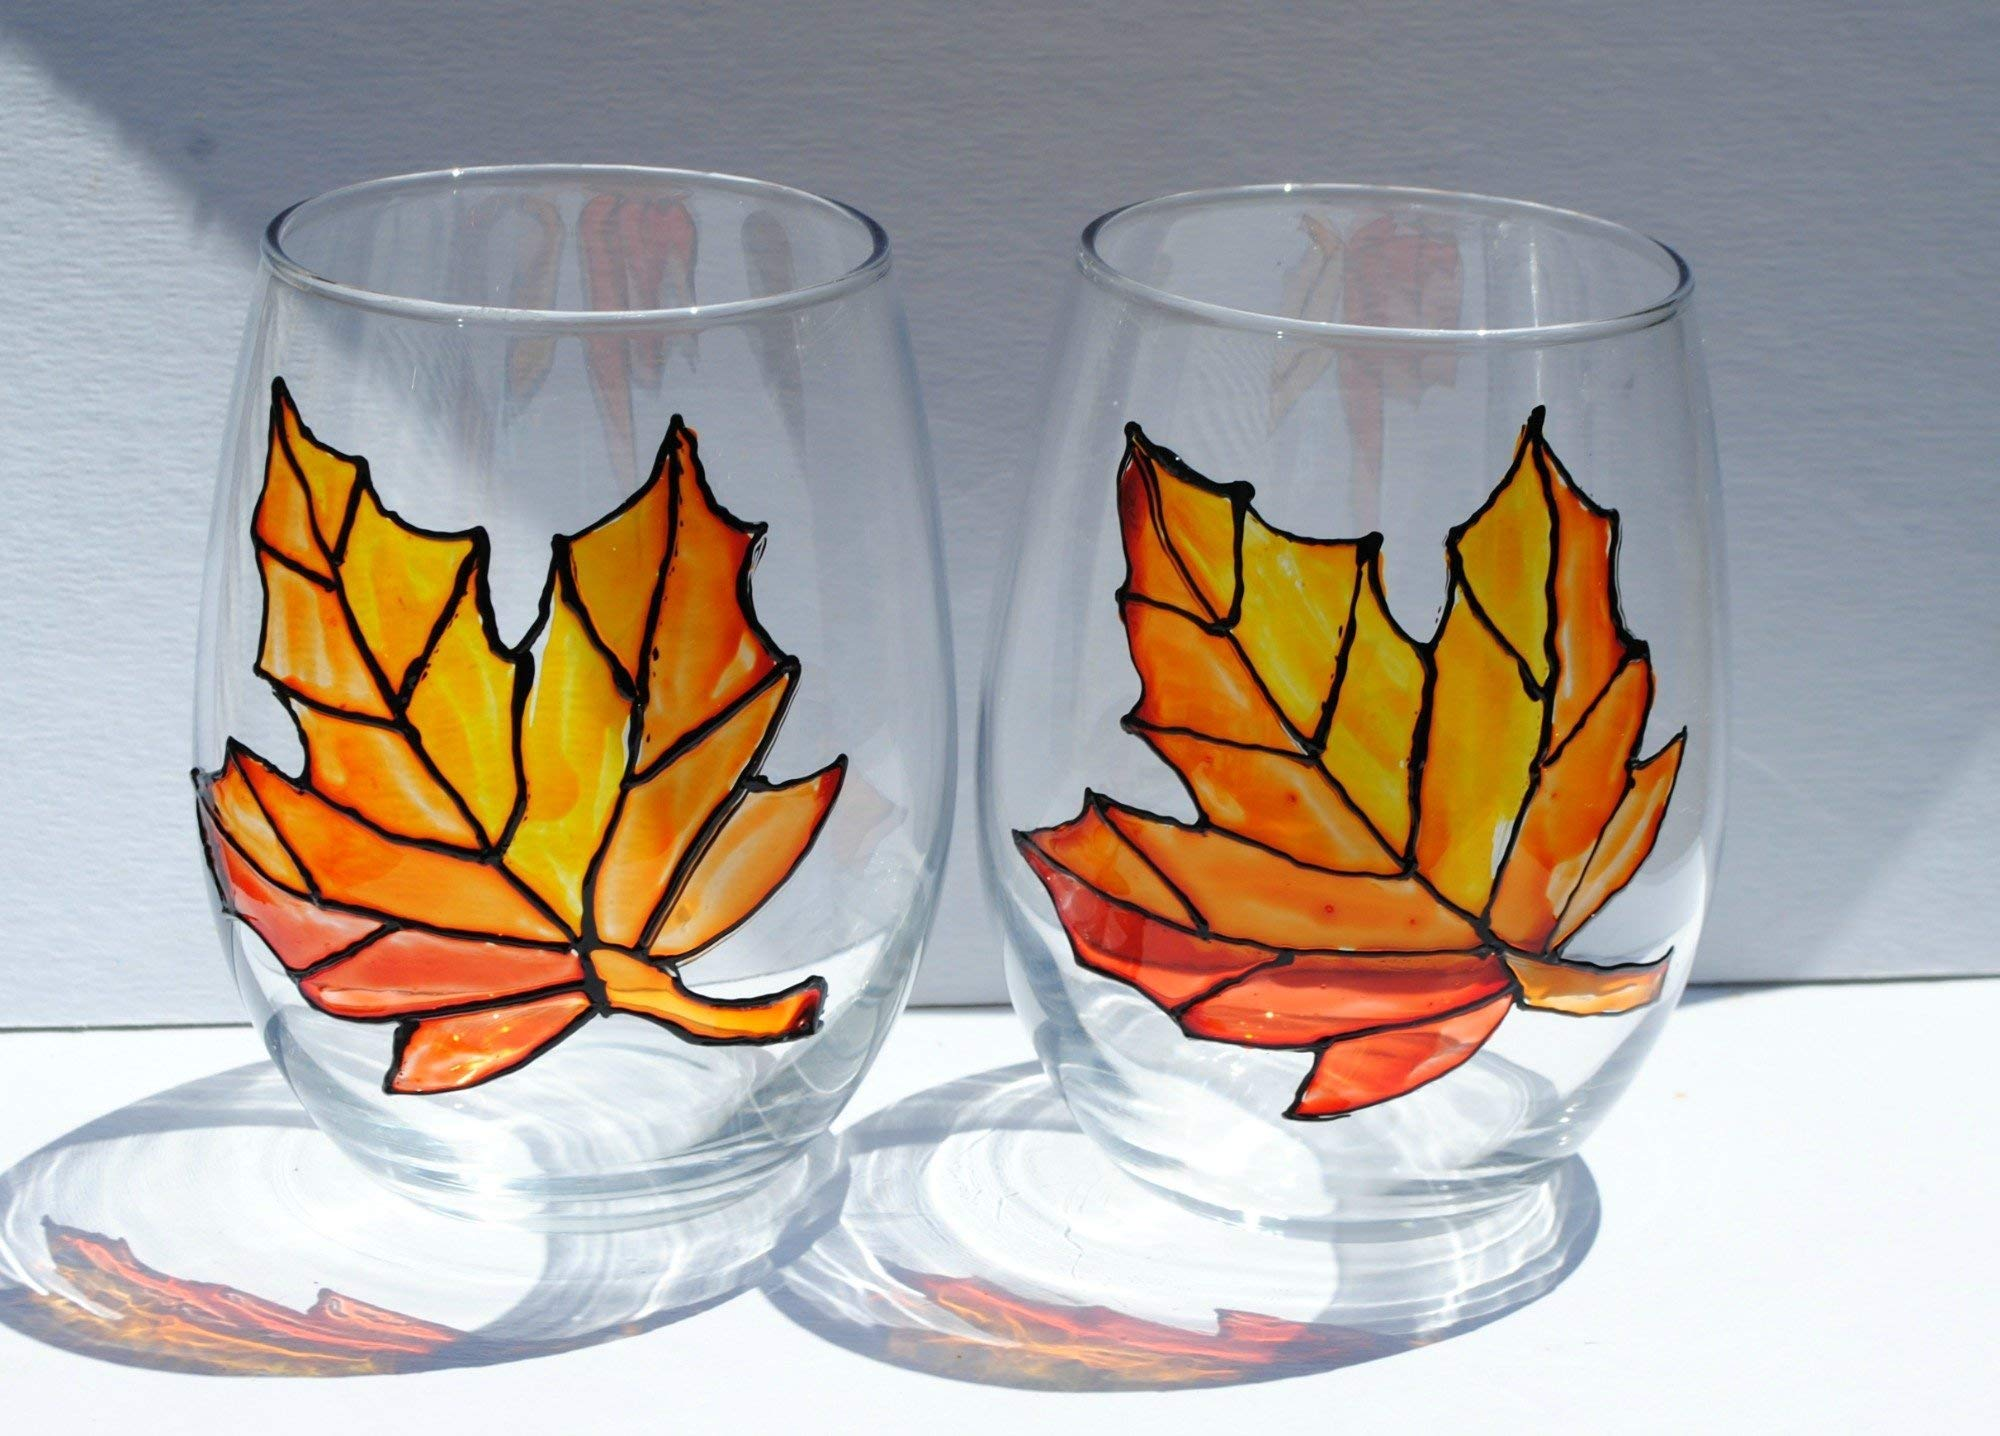 Orange Autumn Maple Leaf Hand Painted (Set of 2) Stemless Wine Glasses Fall Home Décor